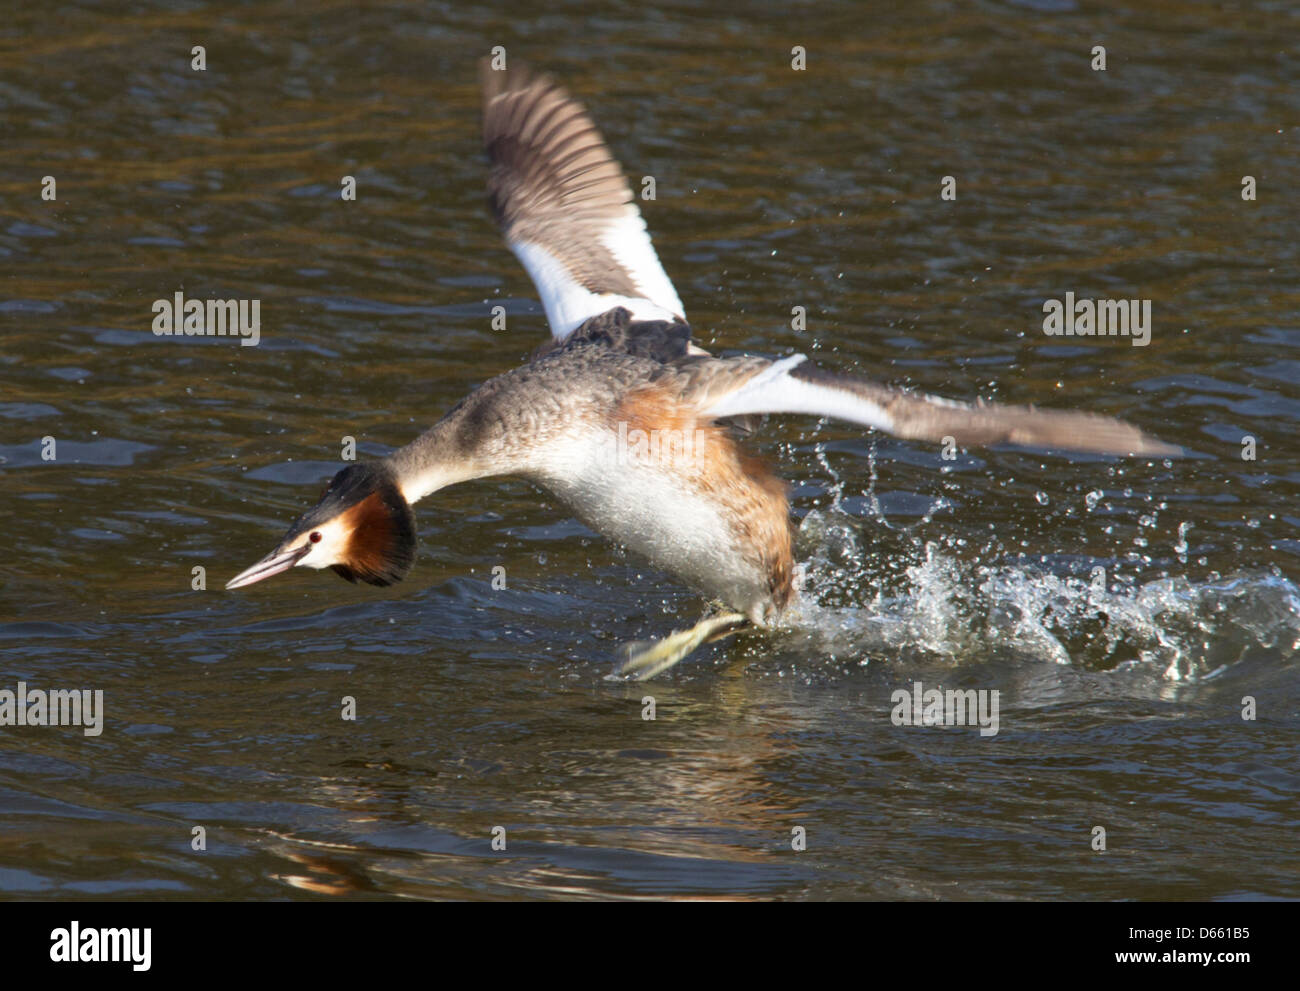 great crested grebe landing - Stock Image